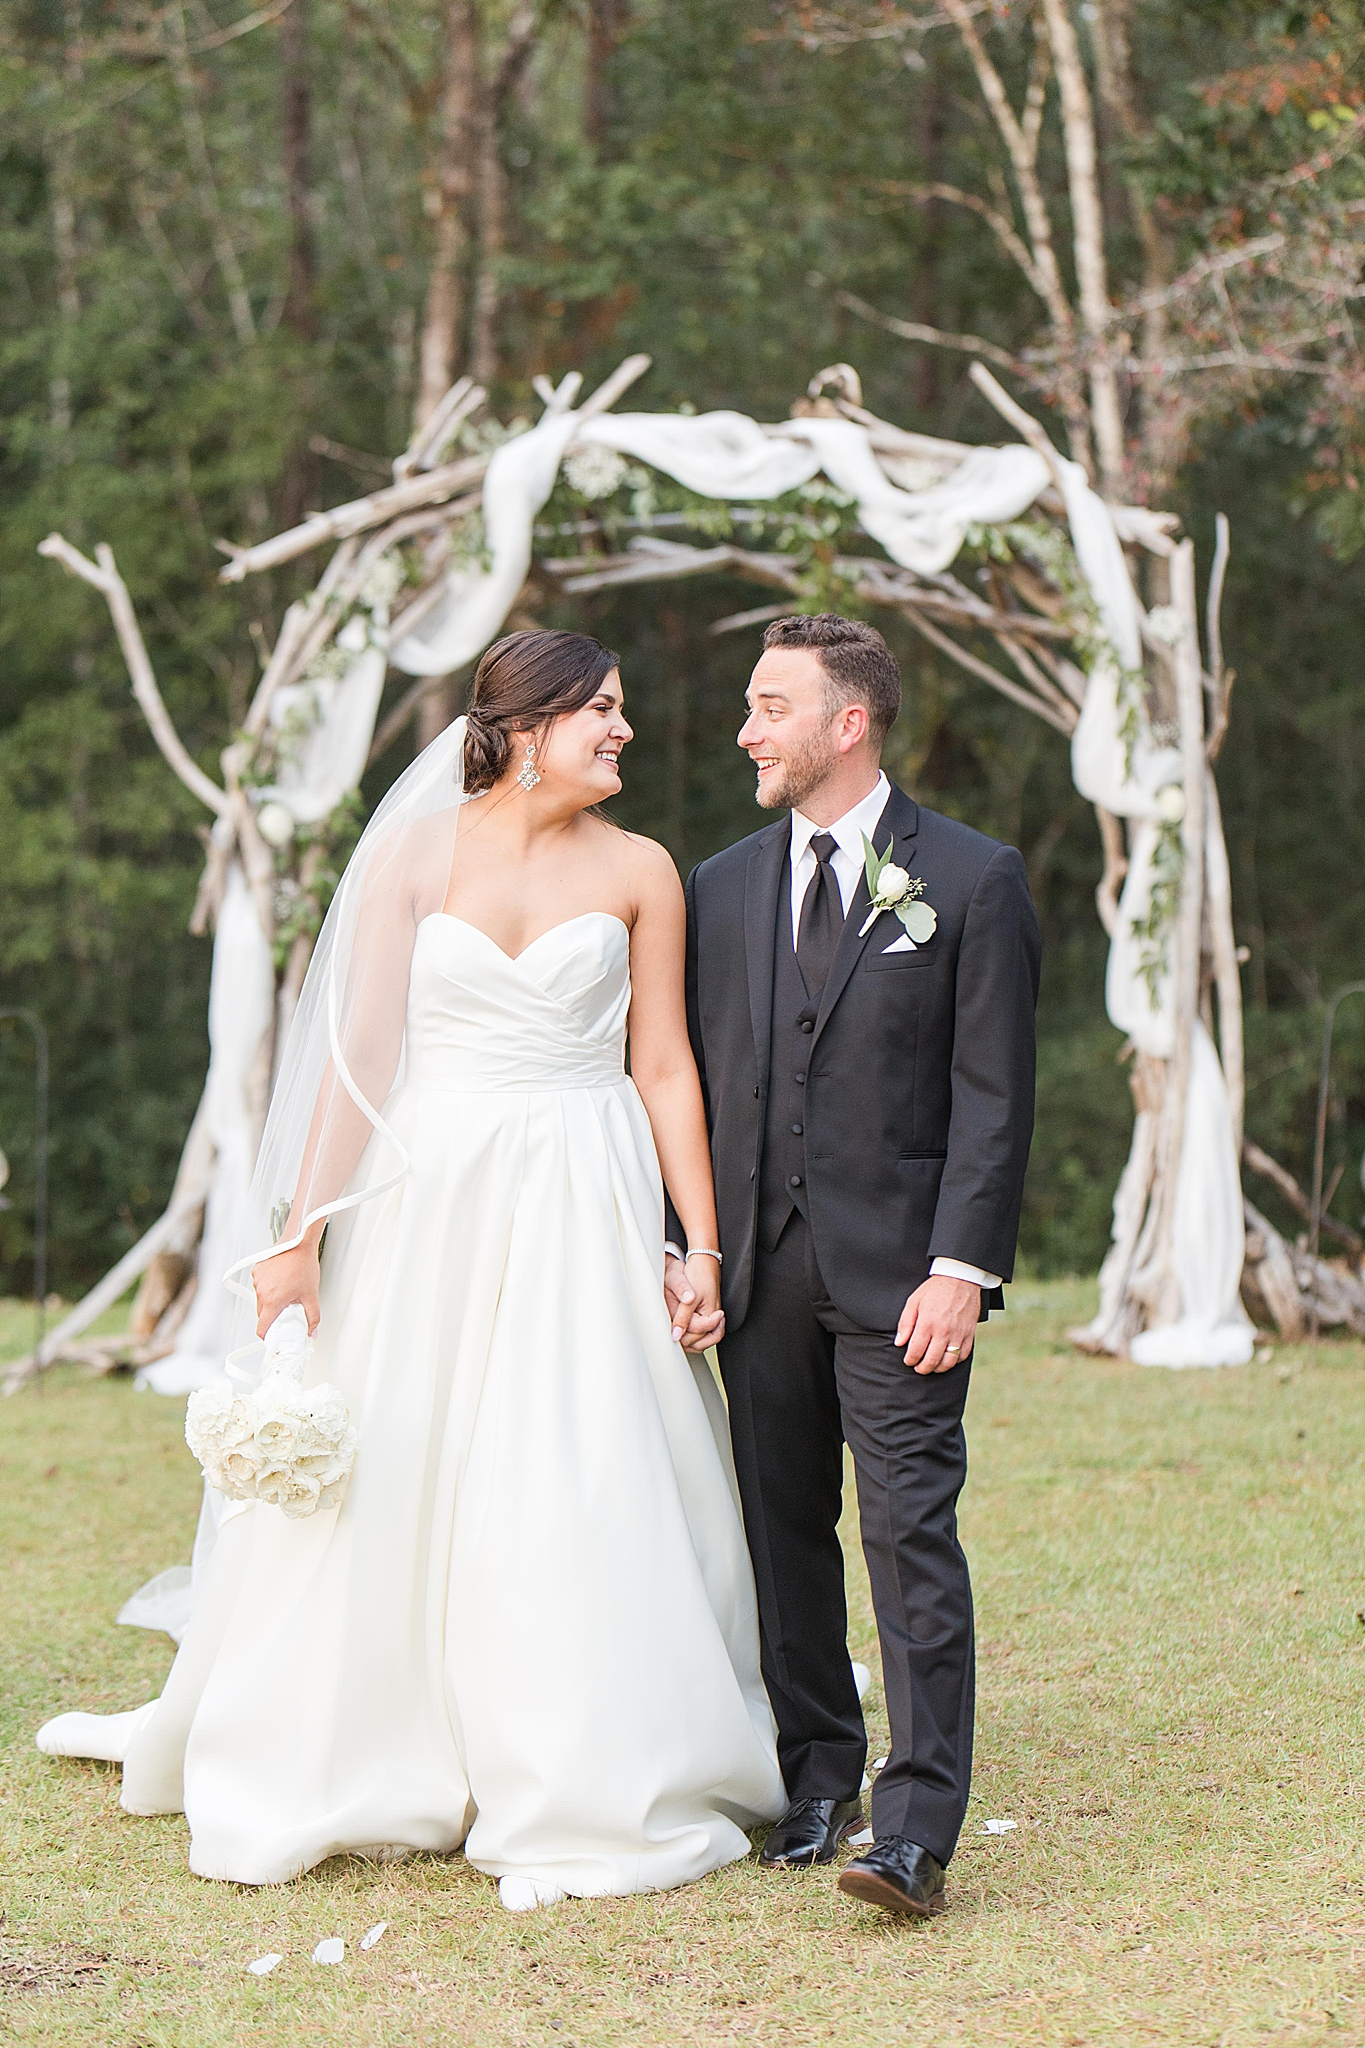 bride and groom walk away from rustic arbor at Izenstone